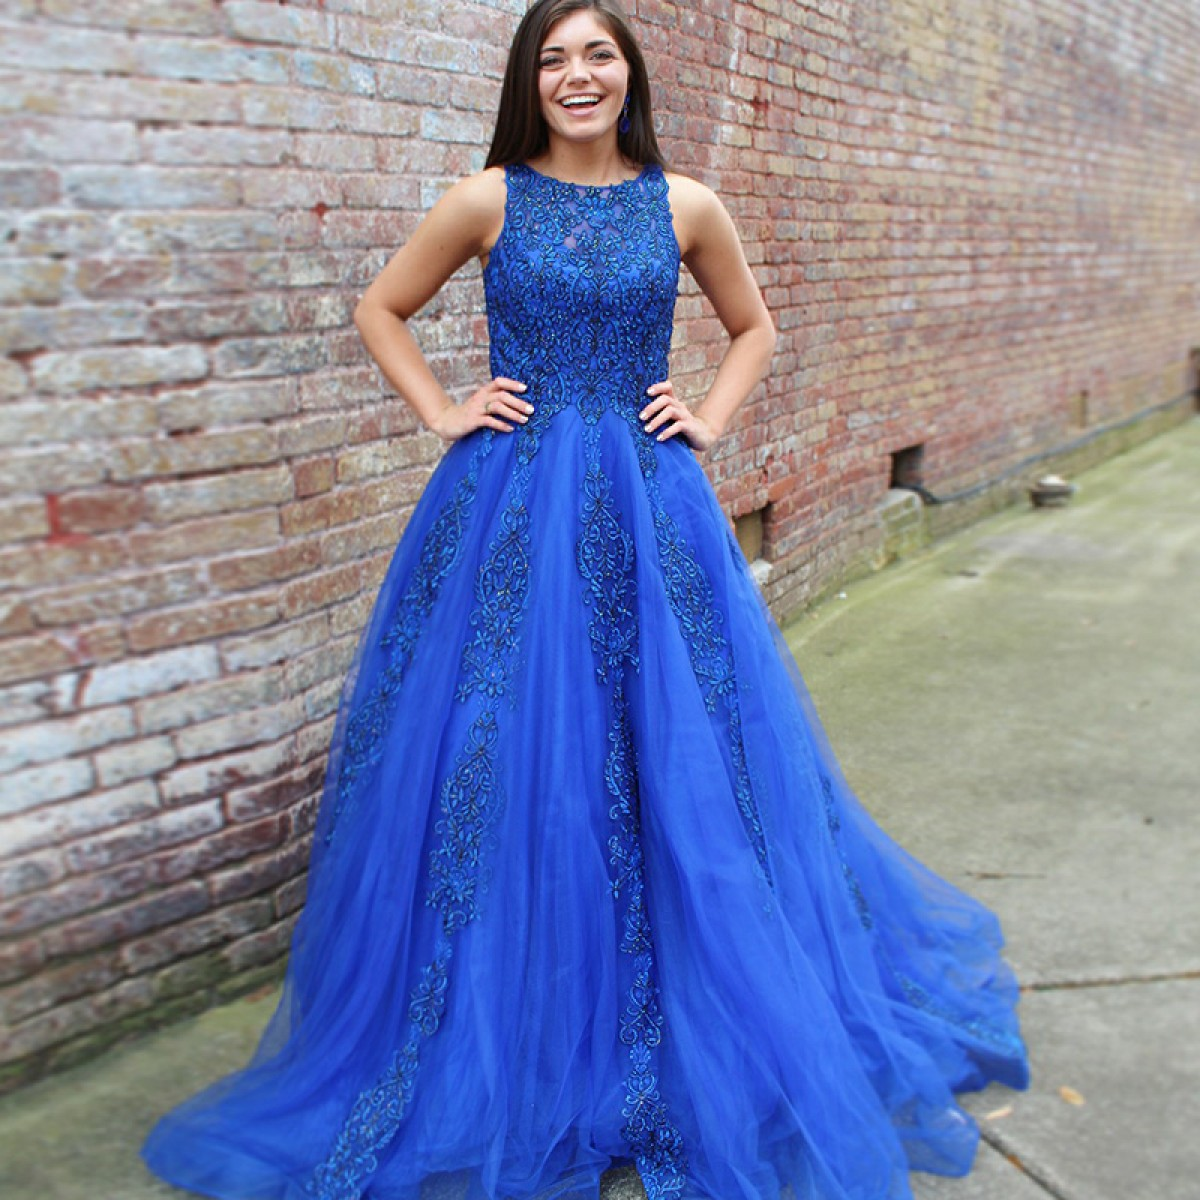 A-Line Round Neck Sweep Train Royal Blue Prom Dress With Lace Beading,2018  New Arrival Beaded Women Party Dresses, Plus Size Wedding Guest Gowns